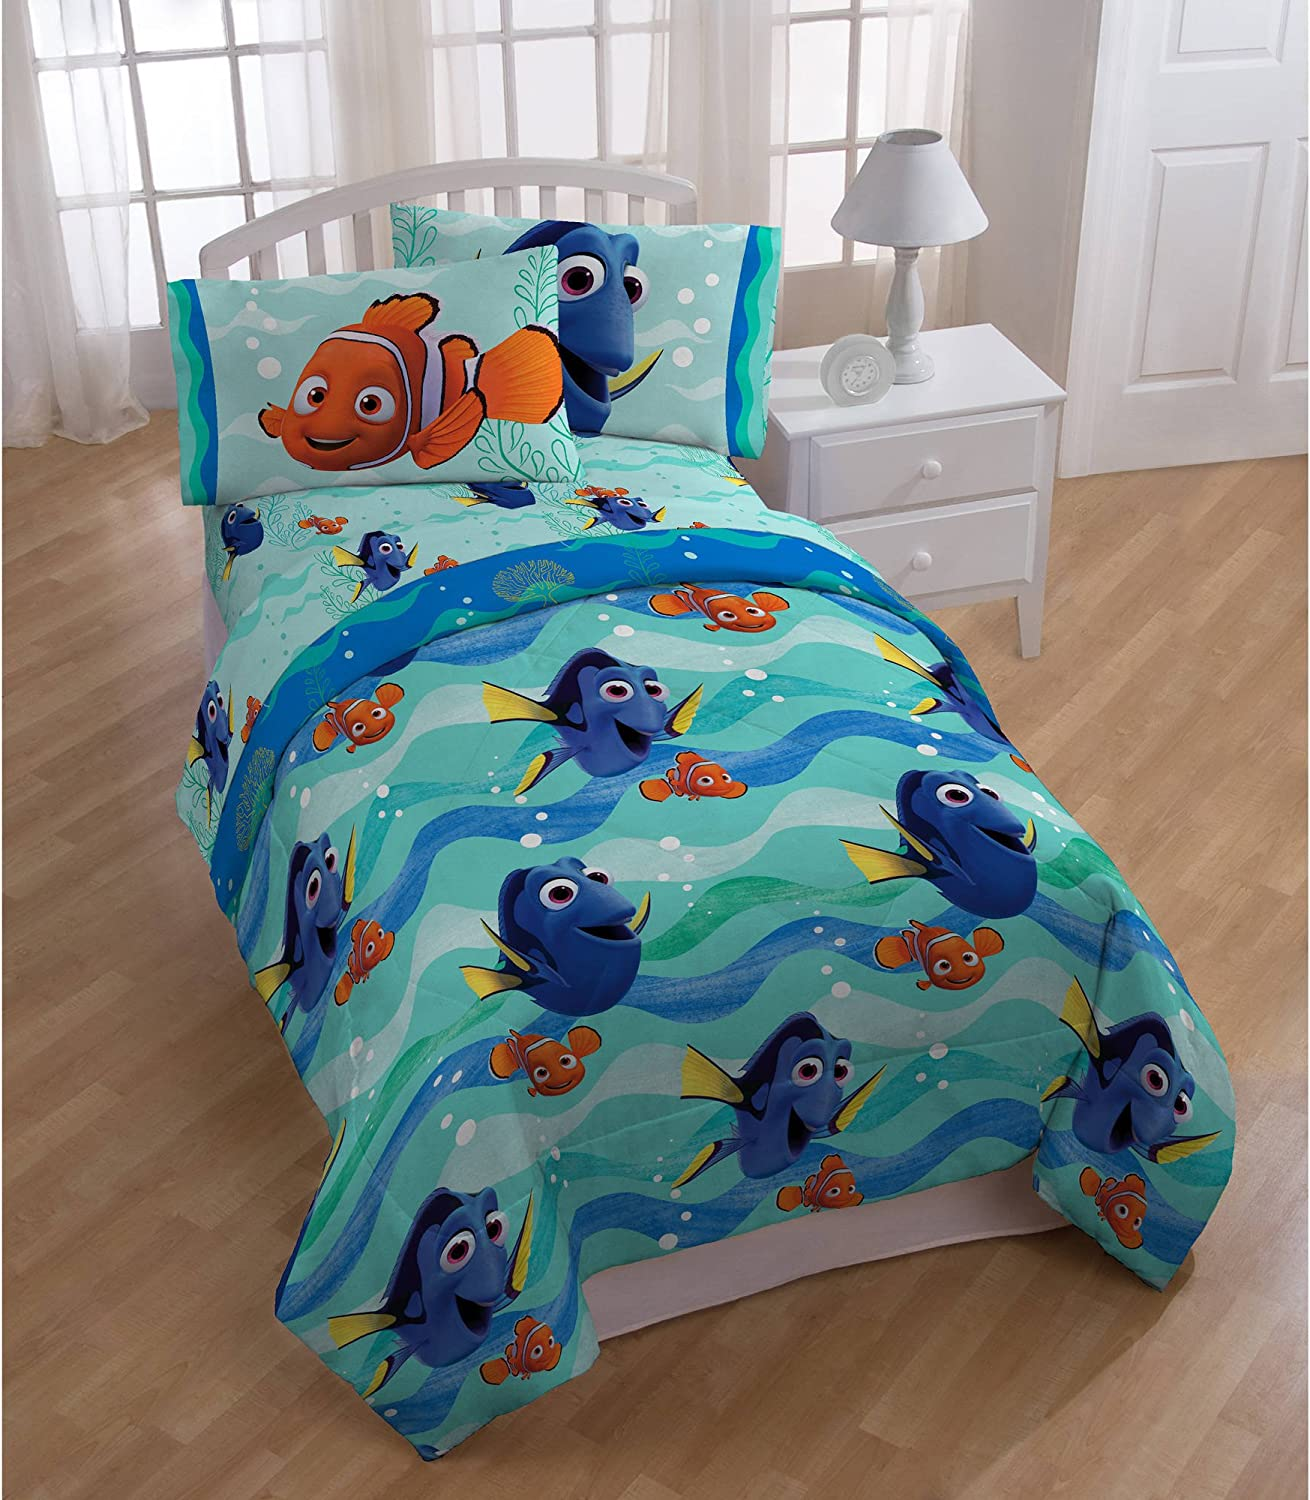 Best Disney Comforters Available in the Market